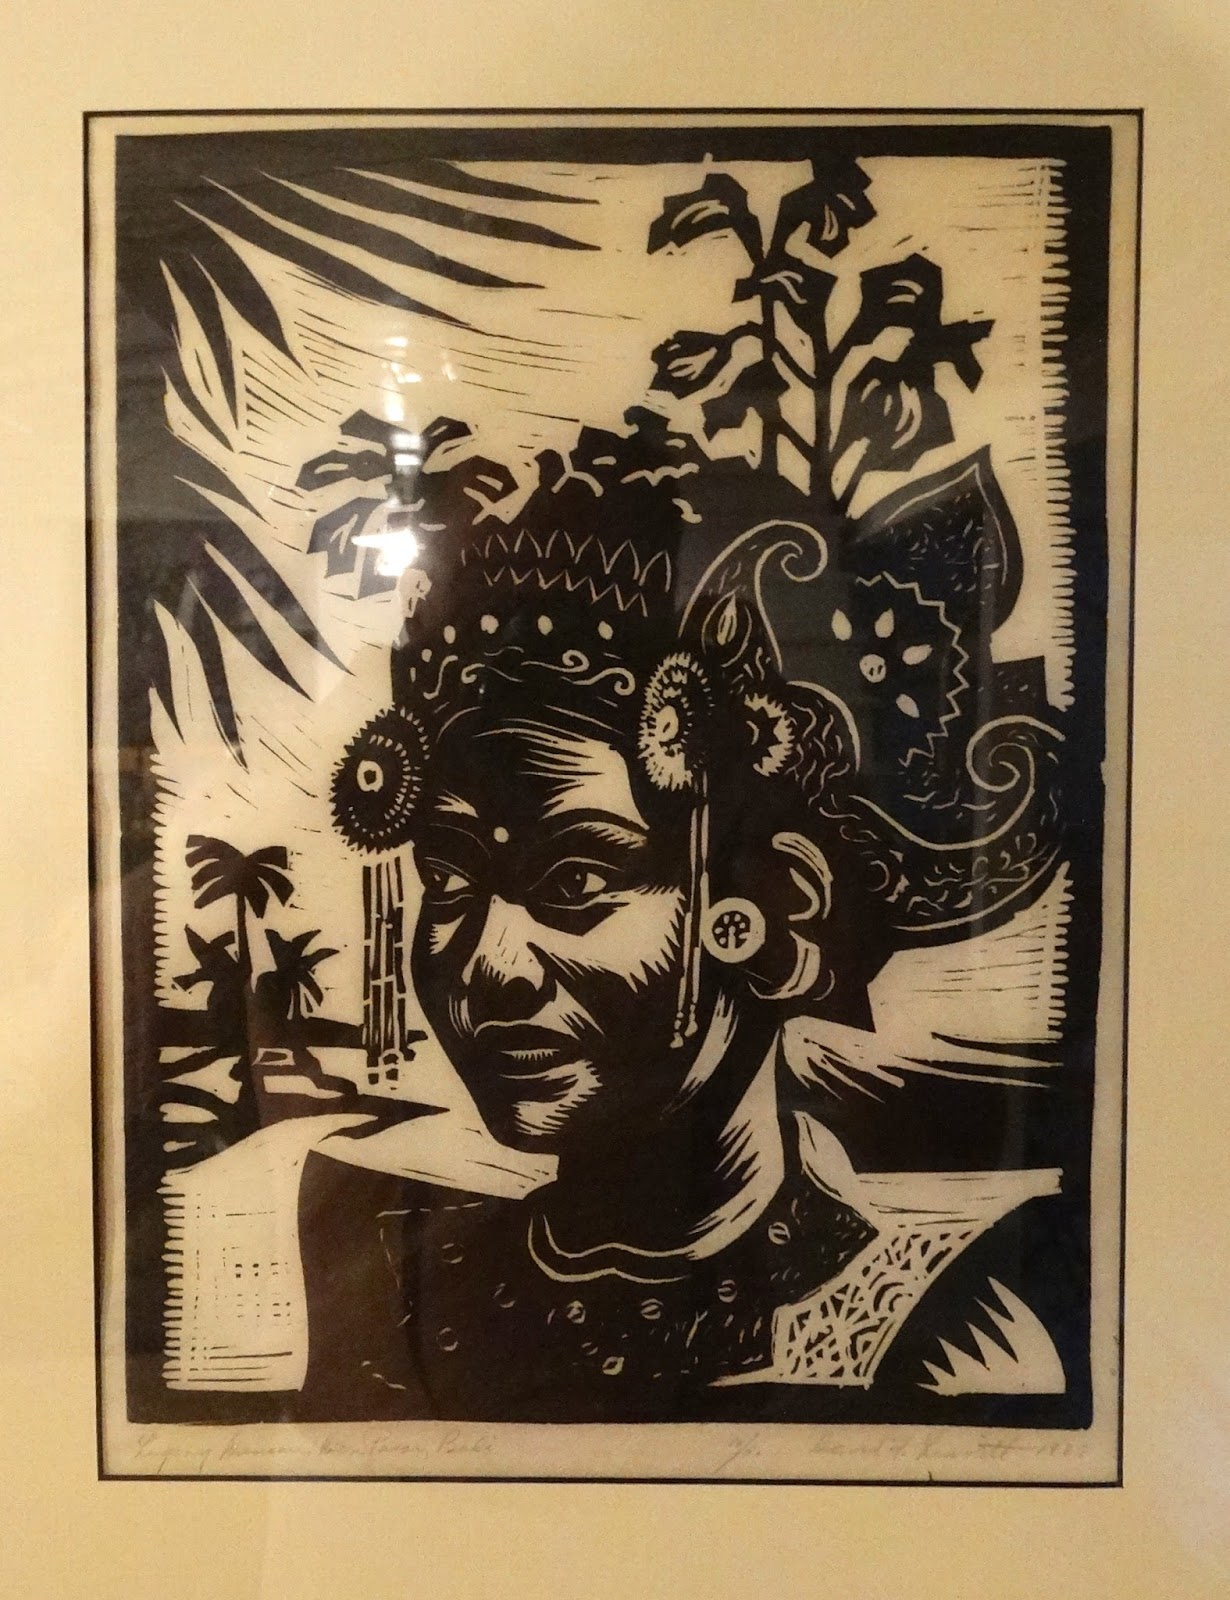 woodblock print titled bali by david franklin leavitt born in st louis in 1897 pencil signed number 10 of 50 dated 1937 david franklin leavitt was